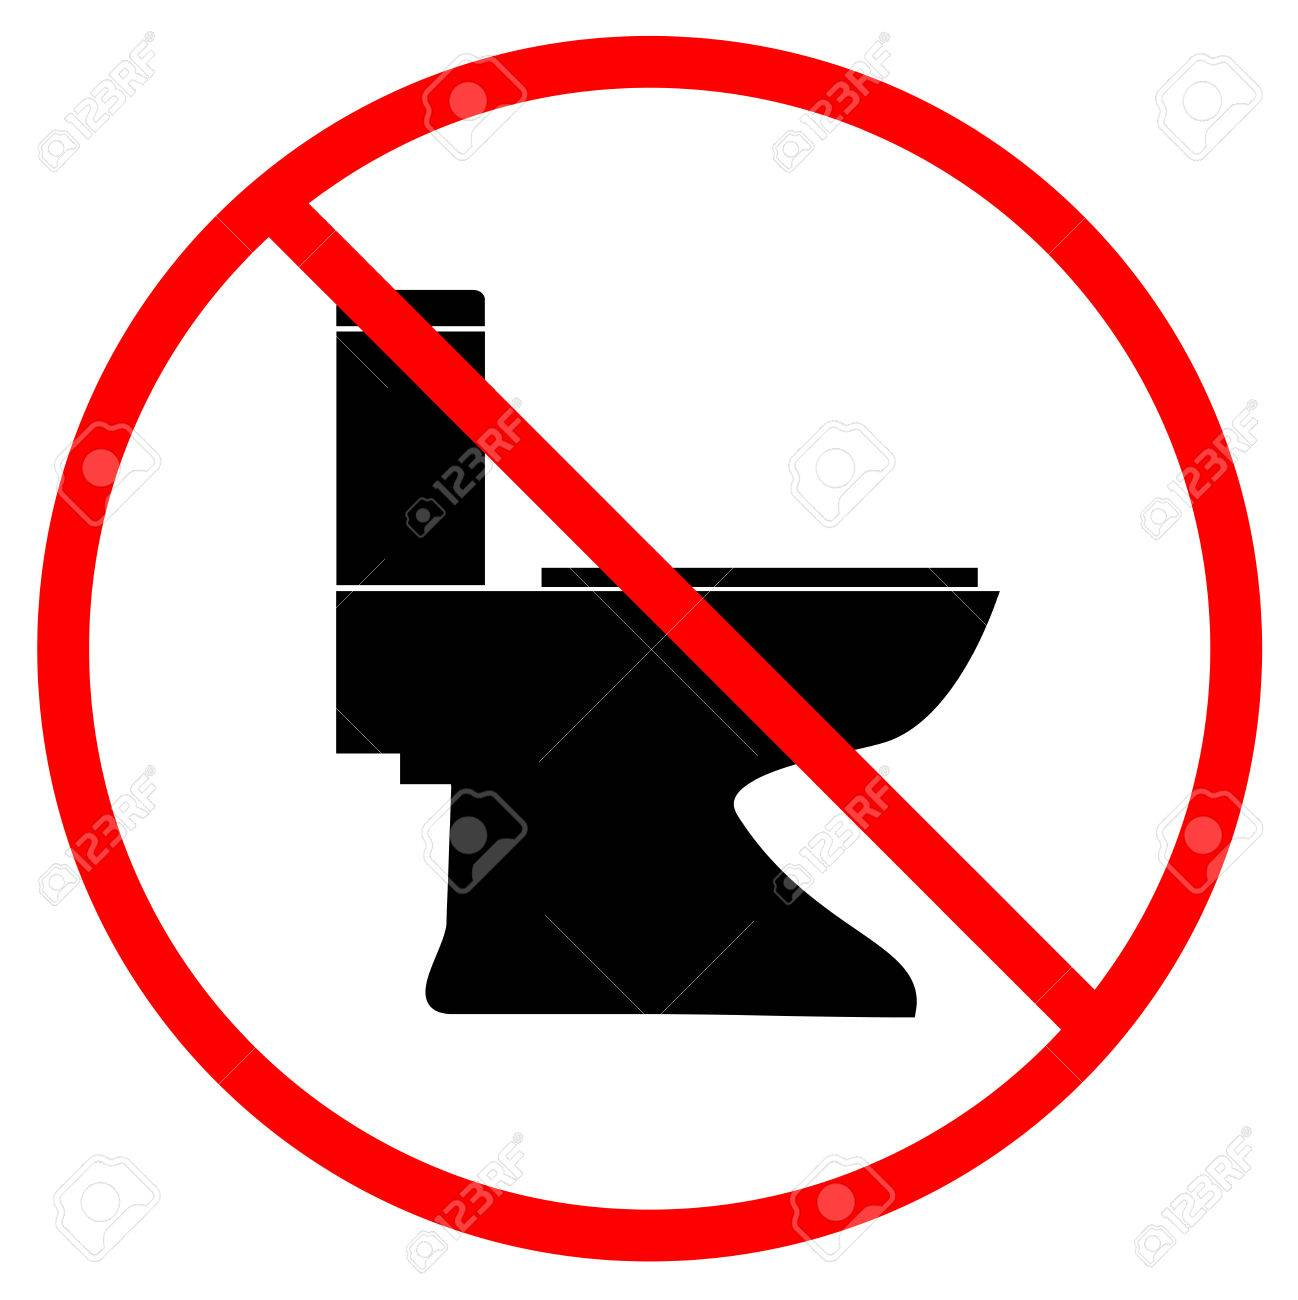 No toilet icon in red circle on white background symbol warning no toilet icon in red circle on white background symbol warning no do toilet buycottarizona Image collections